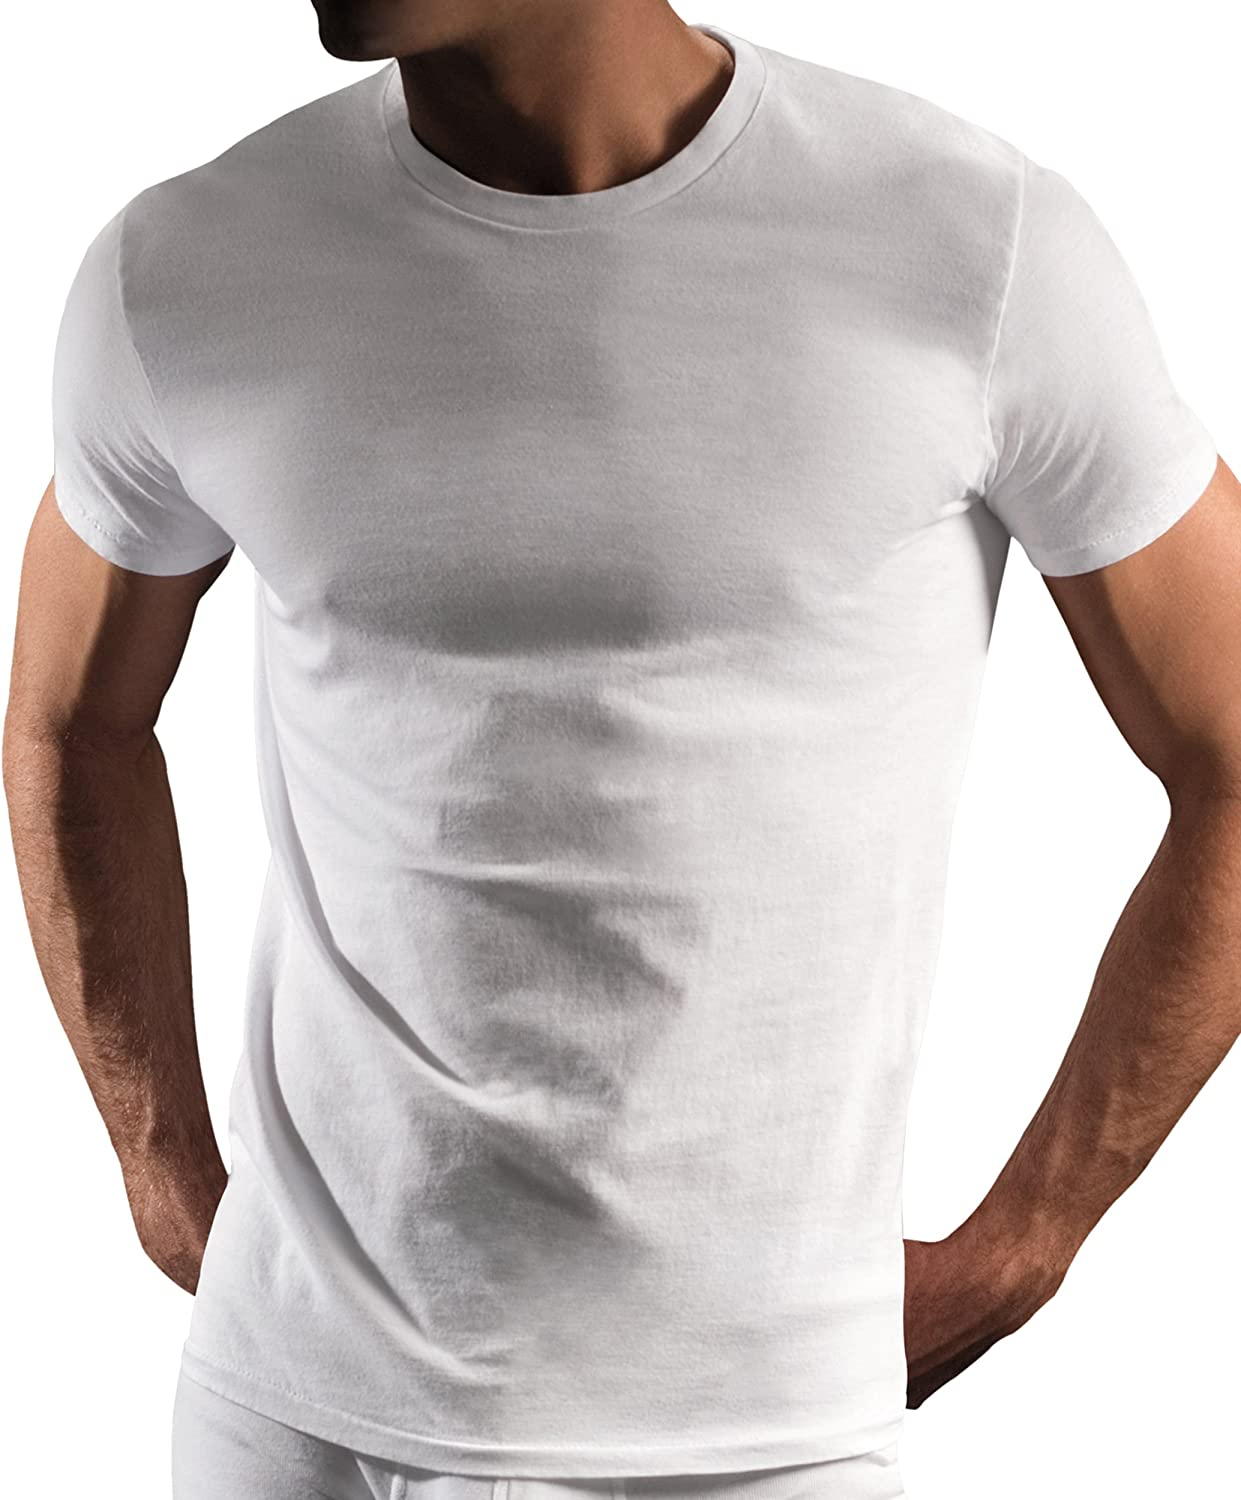 DKNY Men's 3 Pack Neck Crew Limited High material price sale Shirt T